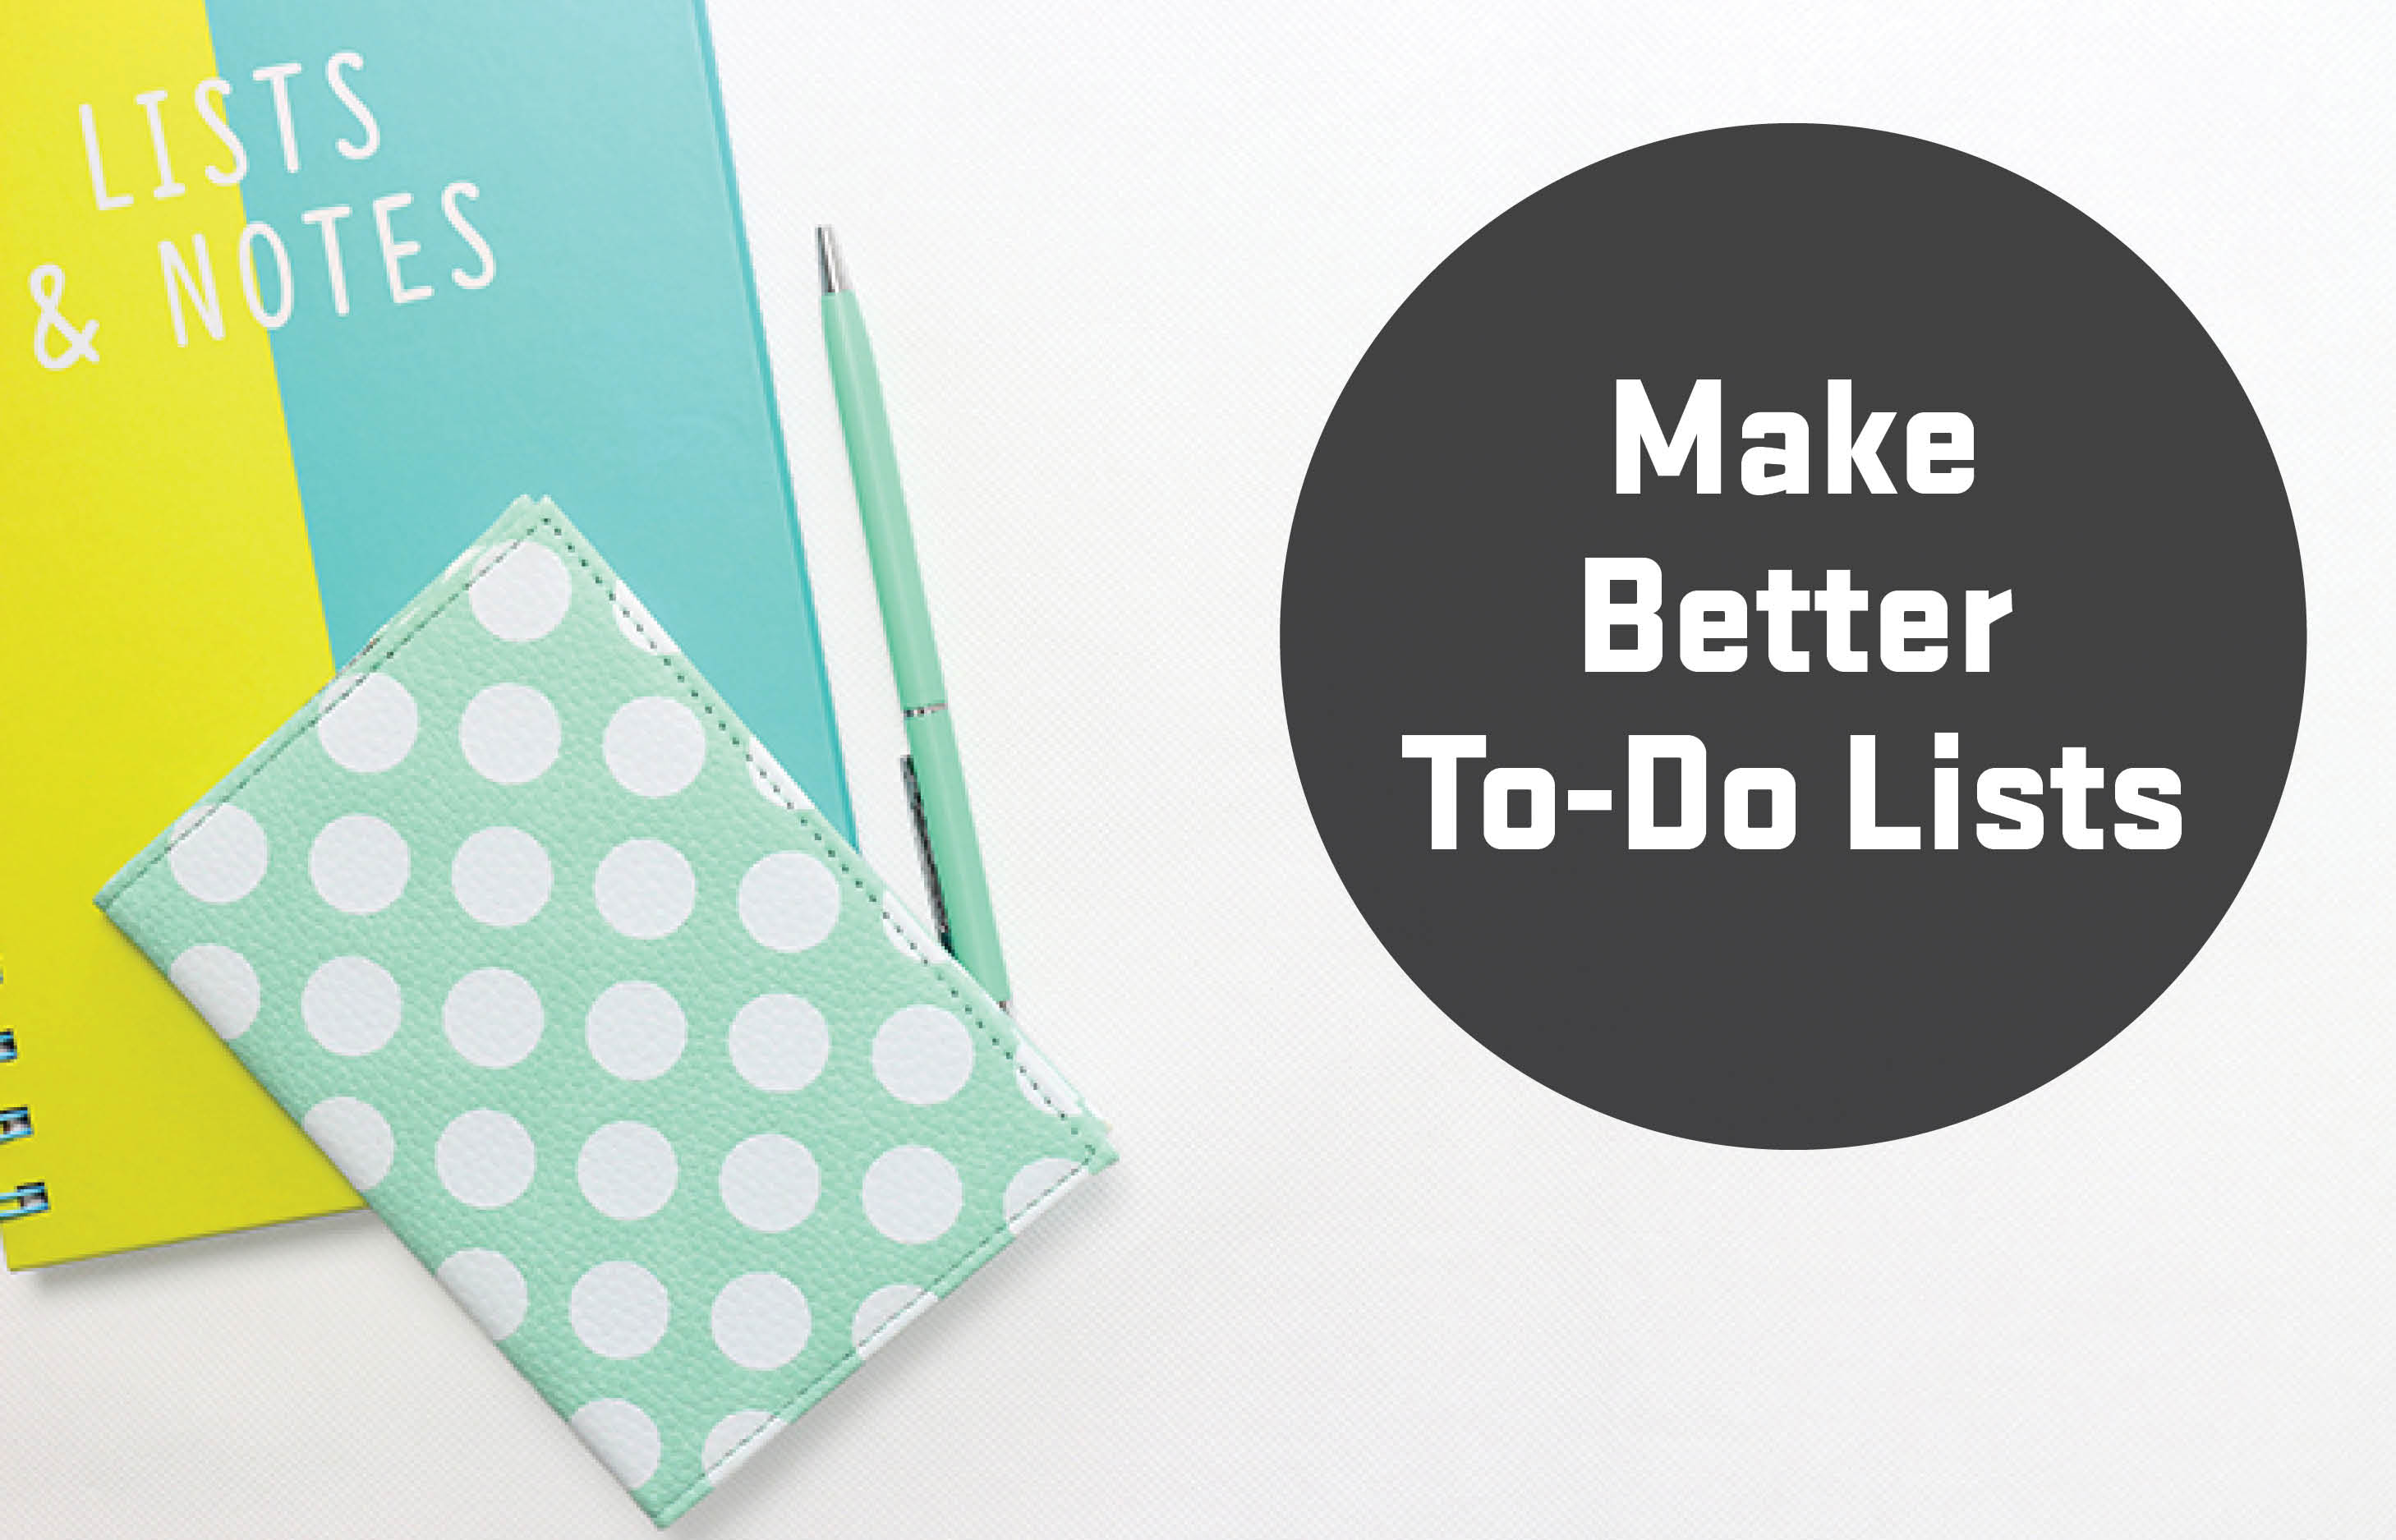 Make better to-do lists